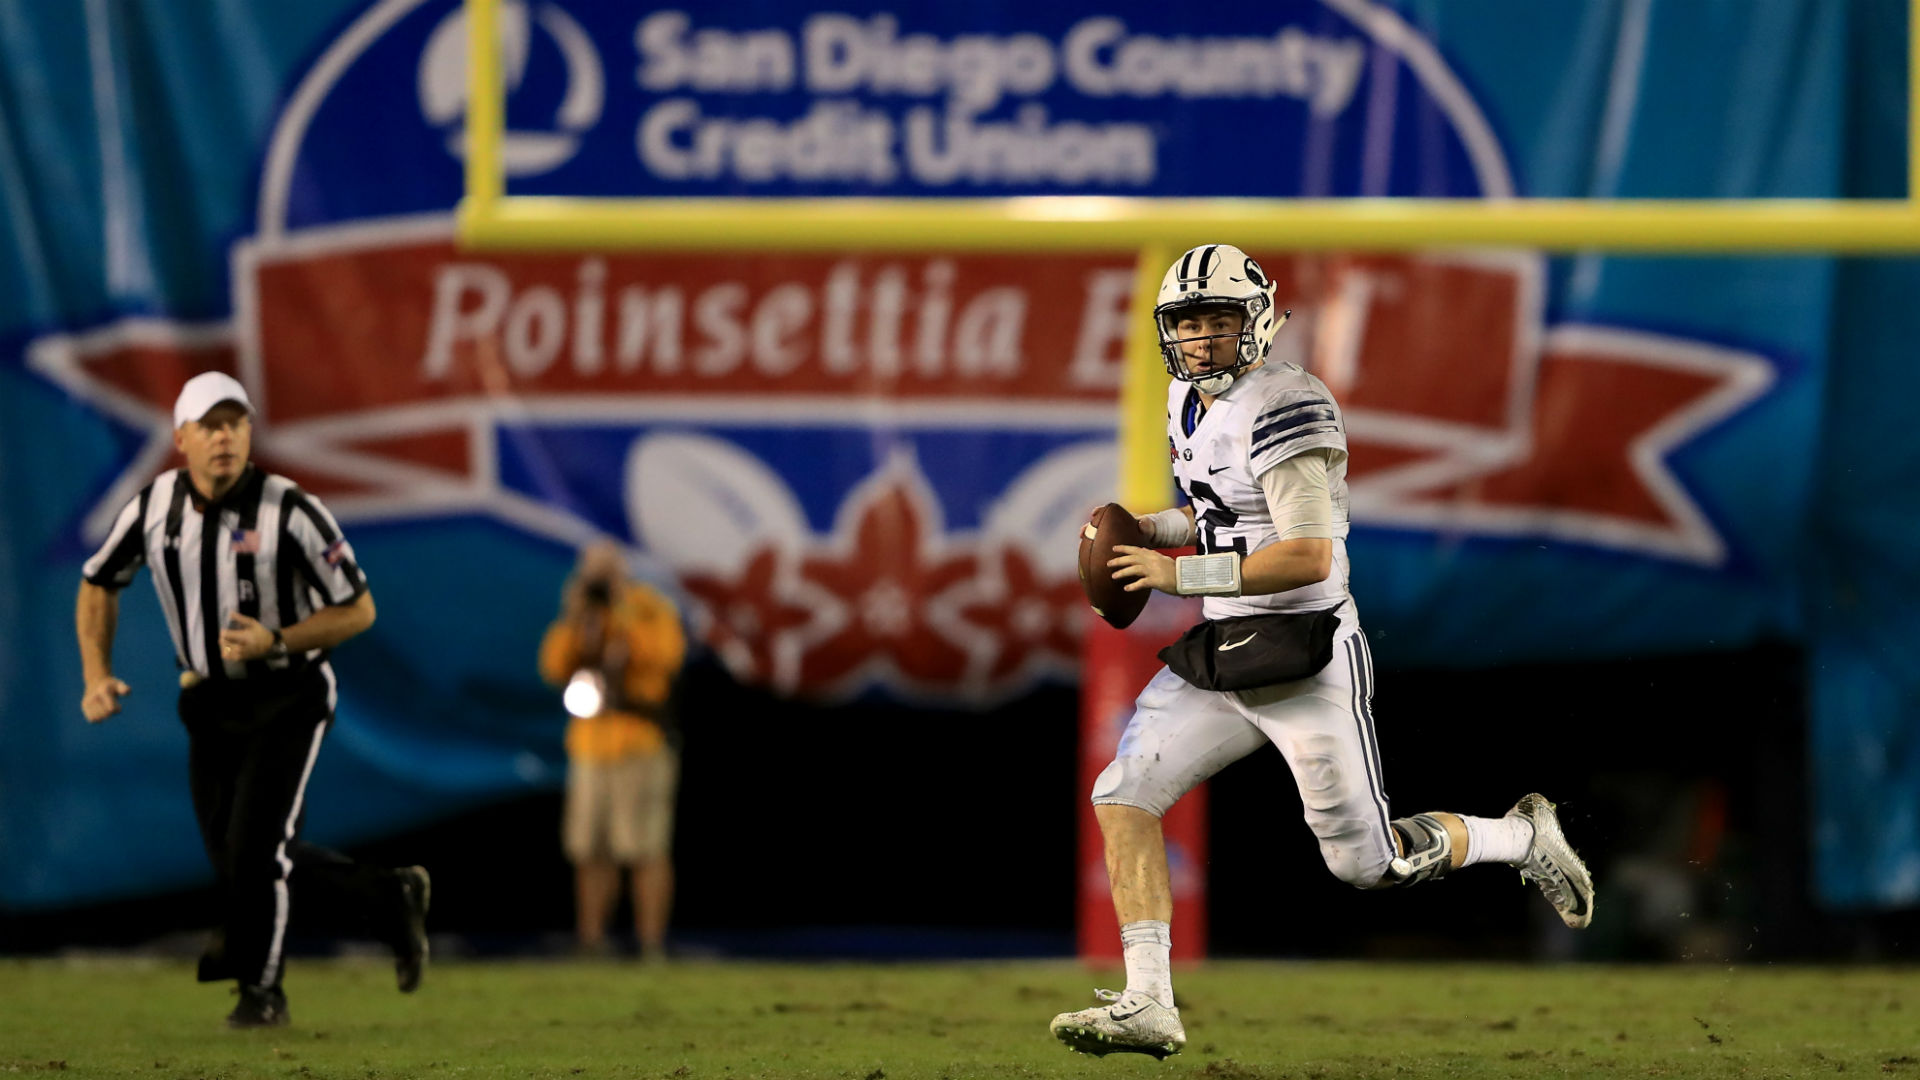 Poinsettia Bowl's end means even less football in San Diego this year